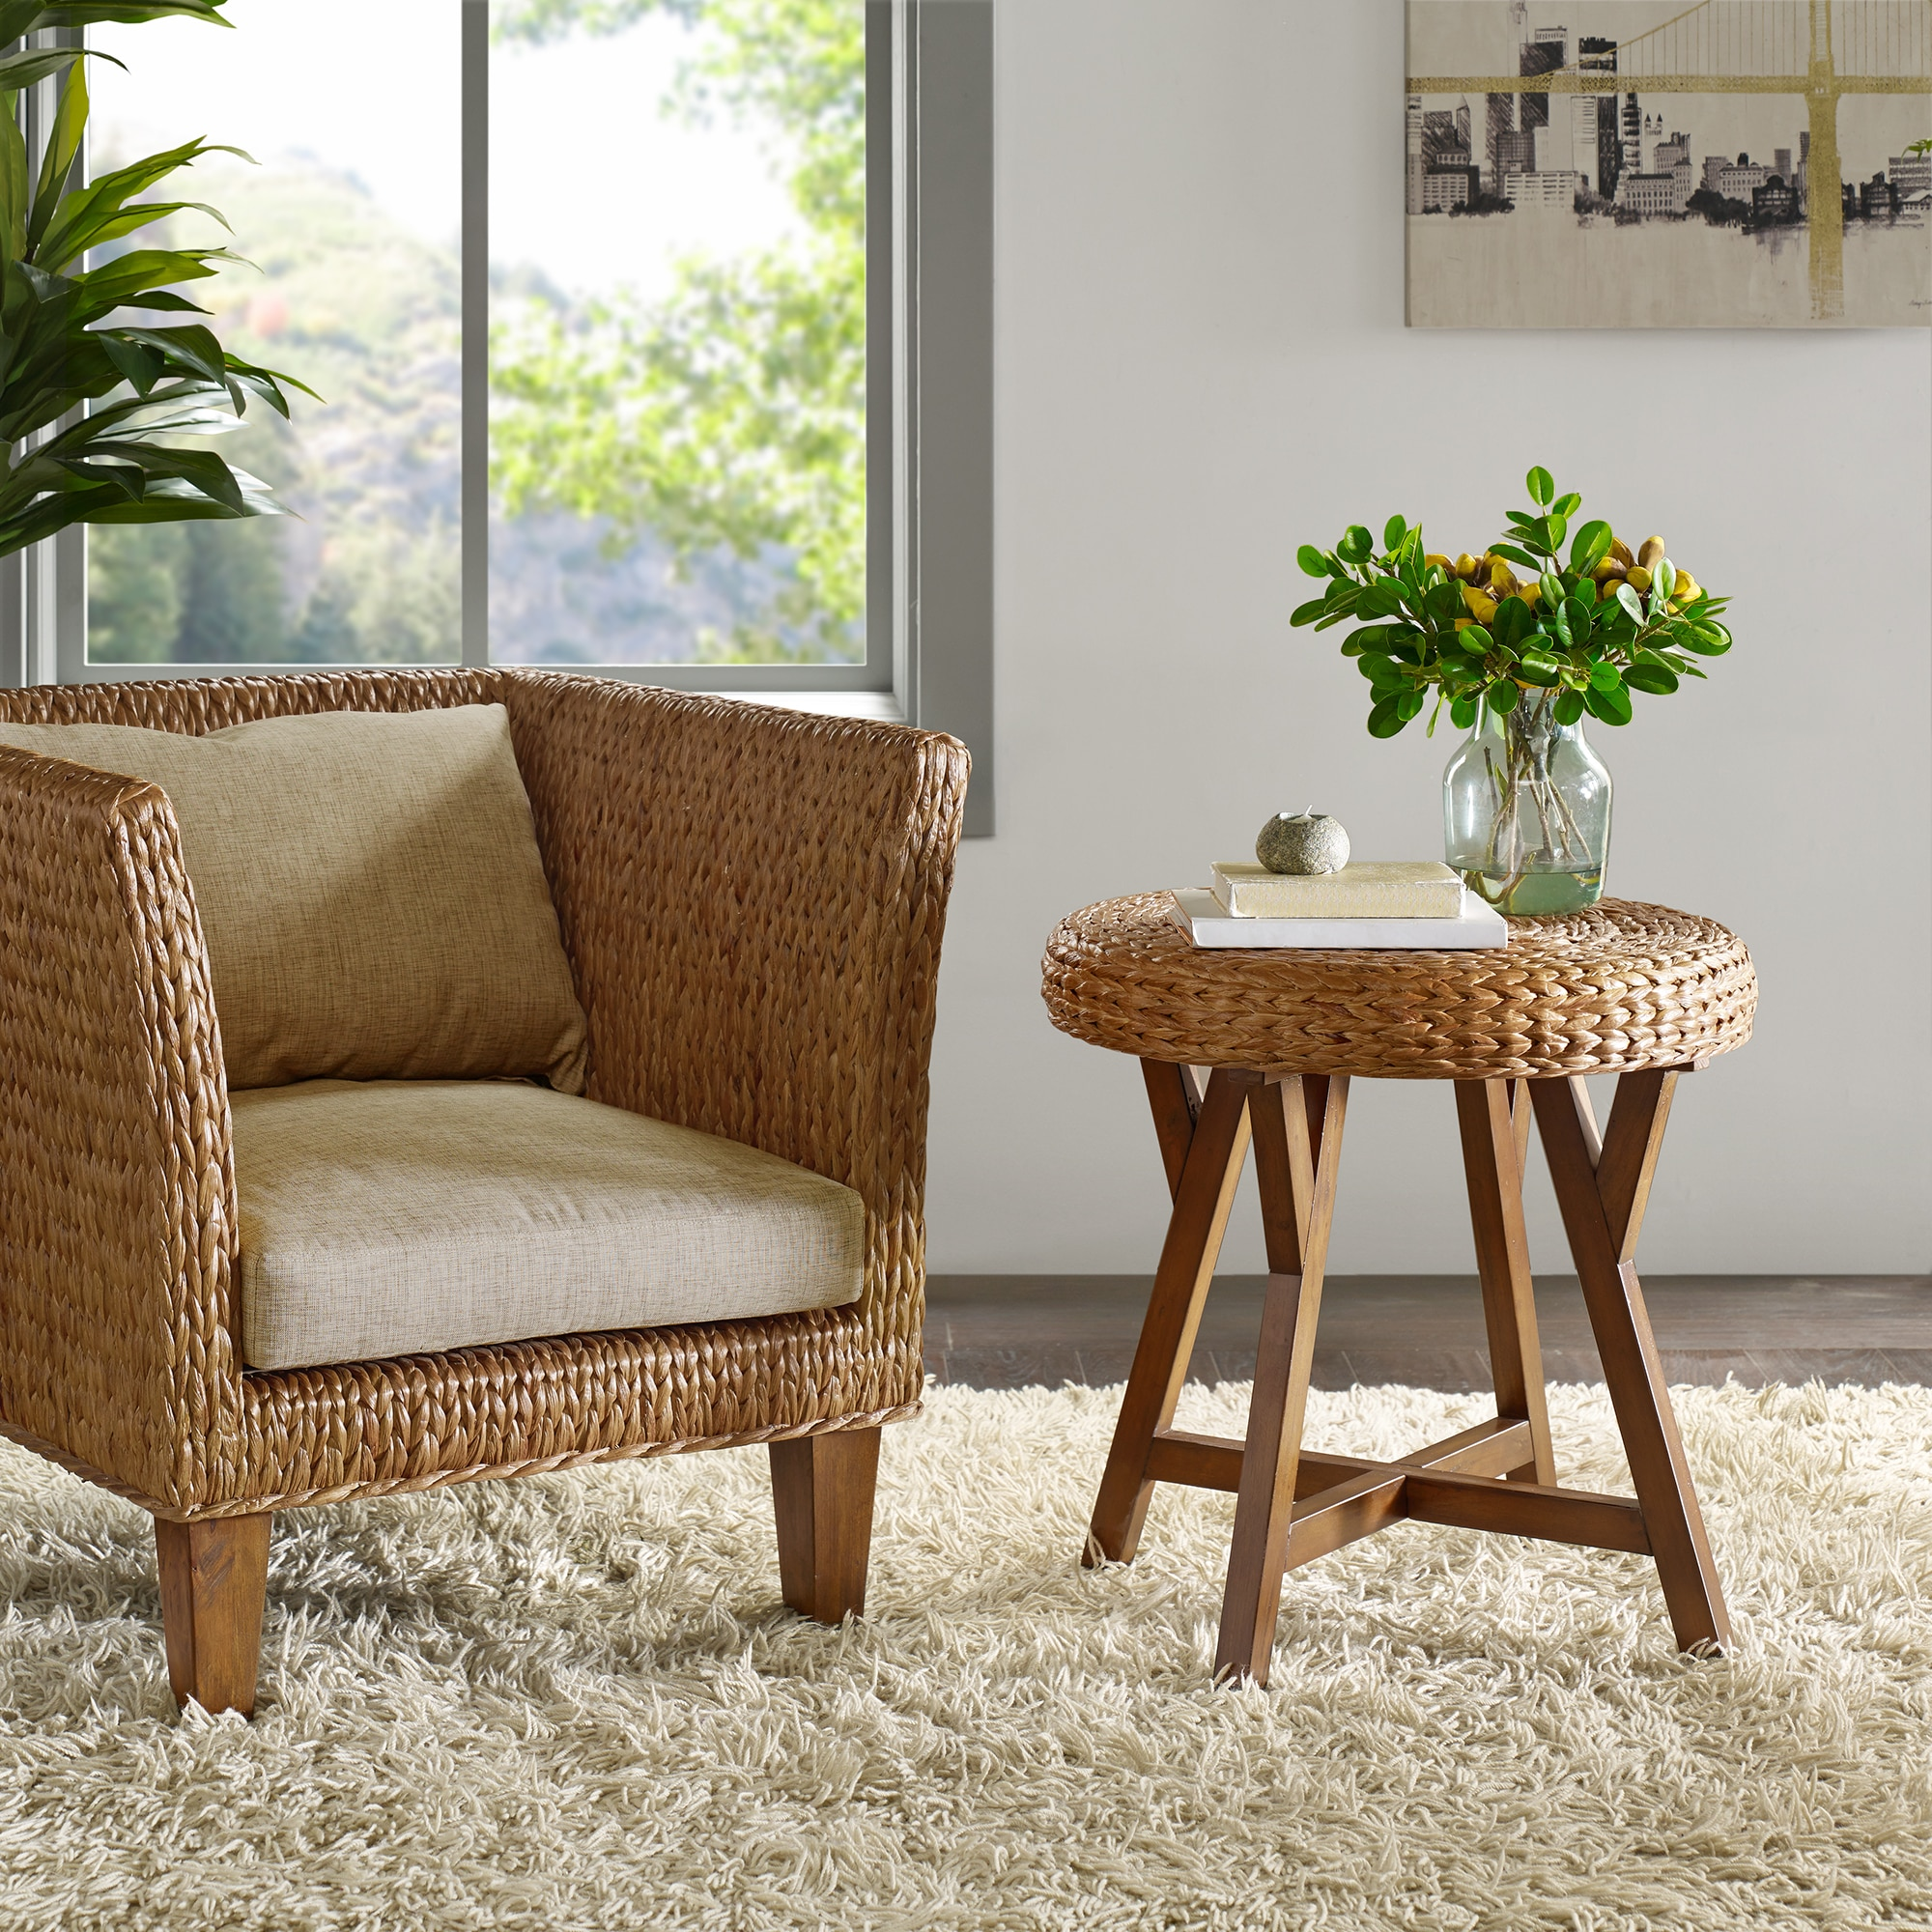 Charmant Buy Coffee, Console, Sofa U0026 End Tables Online At Overstock.com | Our Best Living  Room Furniture Deals